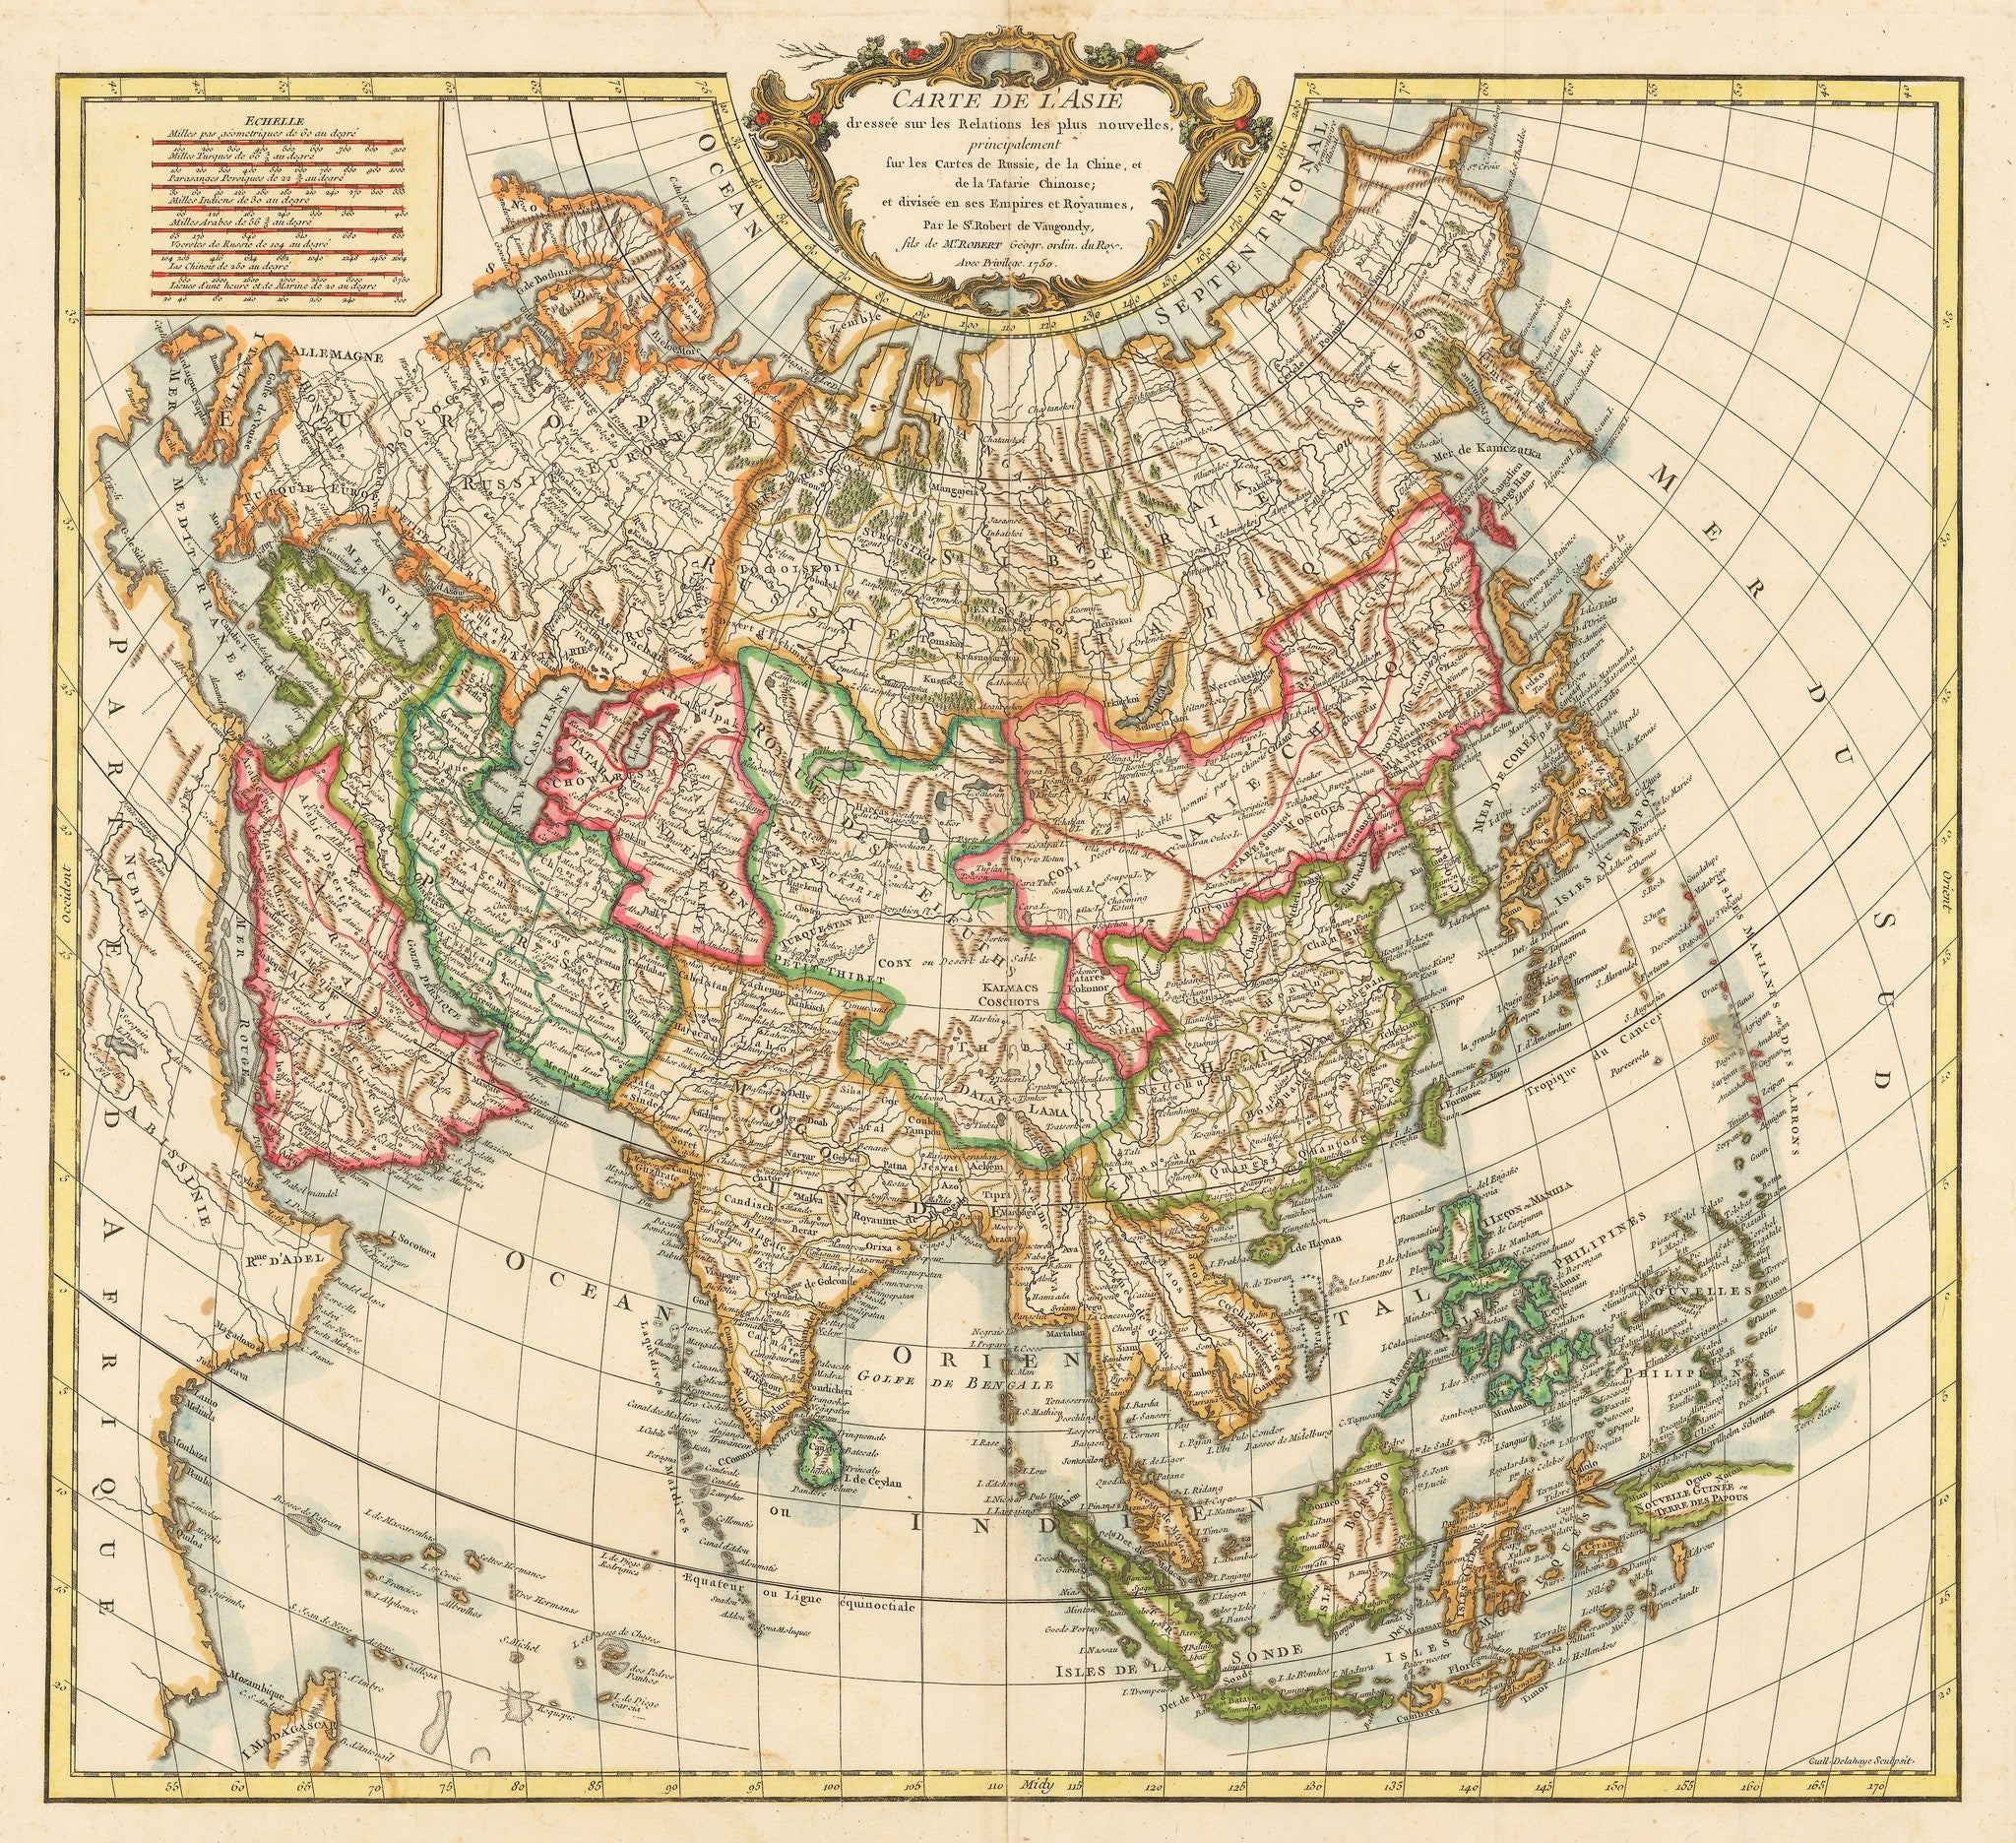 Authentic Antique Map of Asia: Carte de l'Asie dressee sur les Relations les plus nouvelles, principalement fur les Cartes de Russie, de la Chine, et de la Tatarie Chinoise; et divisee en ses Empires et Royaumes. By: Robert de Vaugondy Date: 1750 (published) Paris